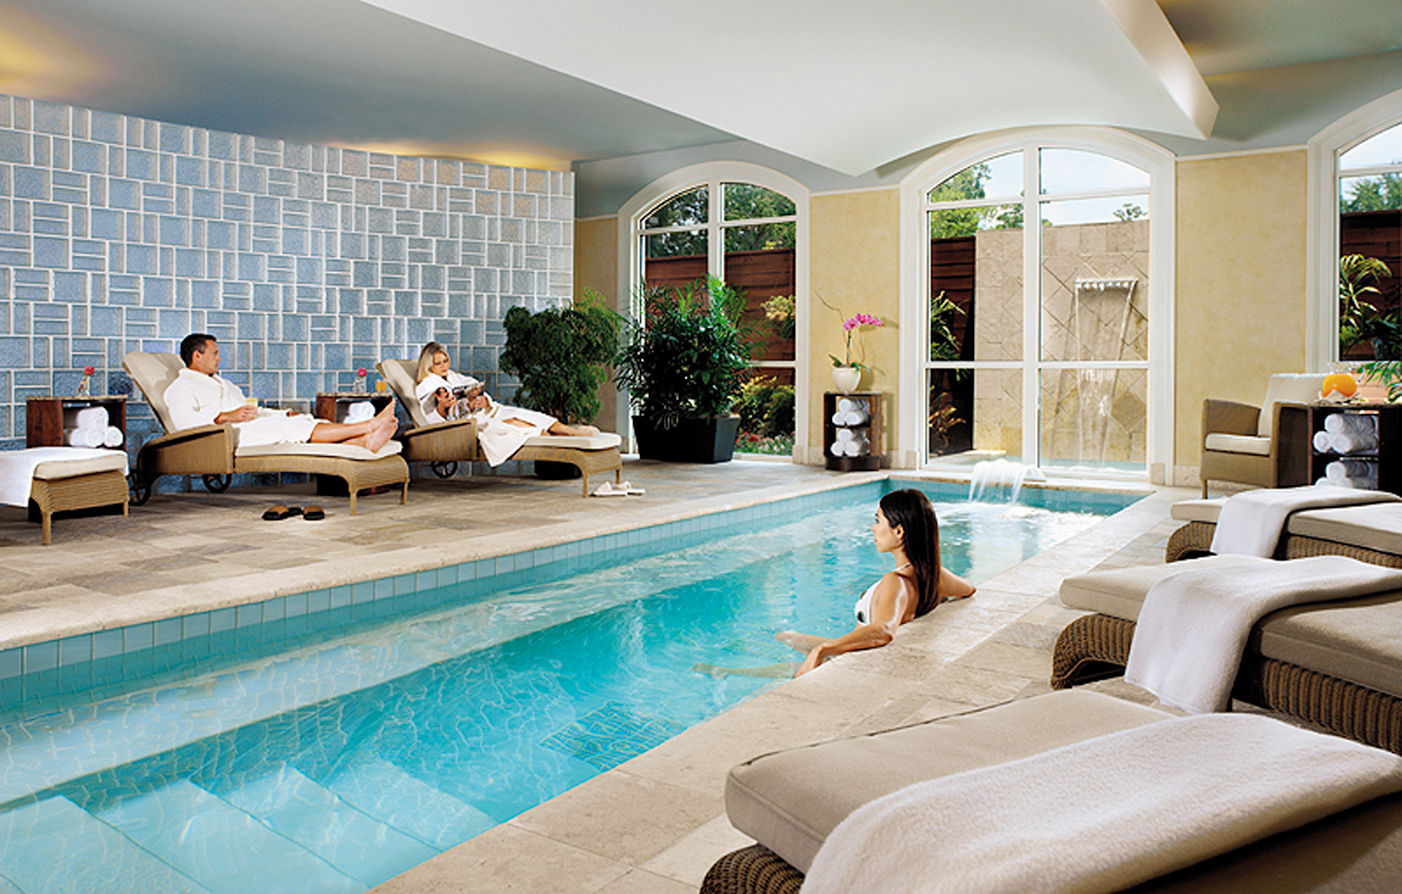 Things to do in houston texas the houstonian hotel club for Texas spas and resorts